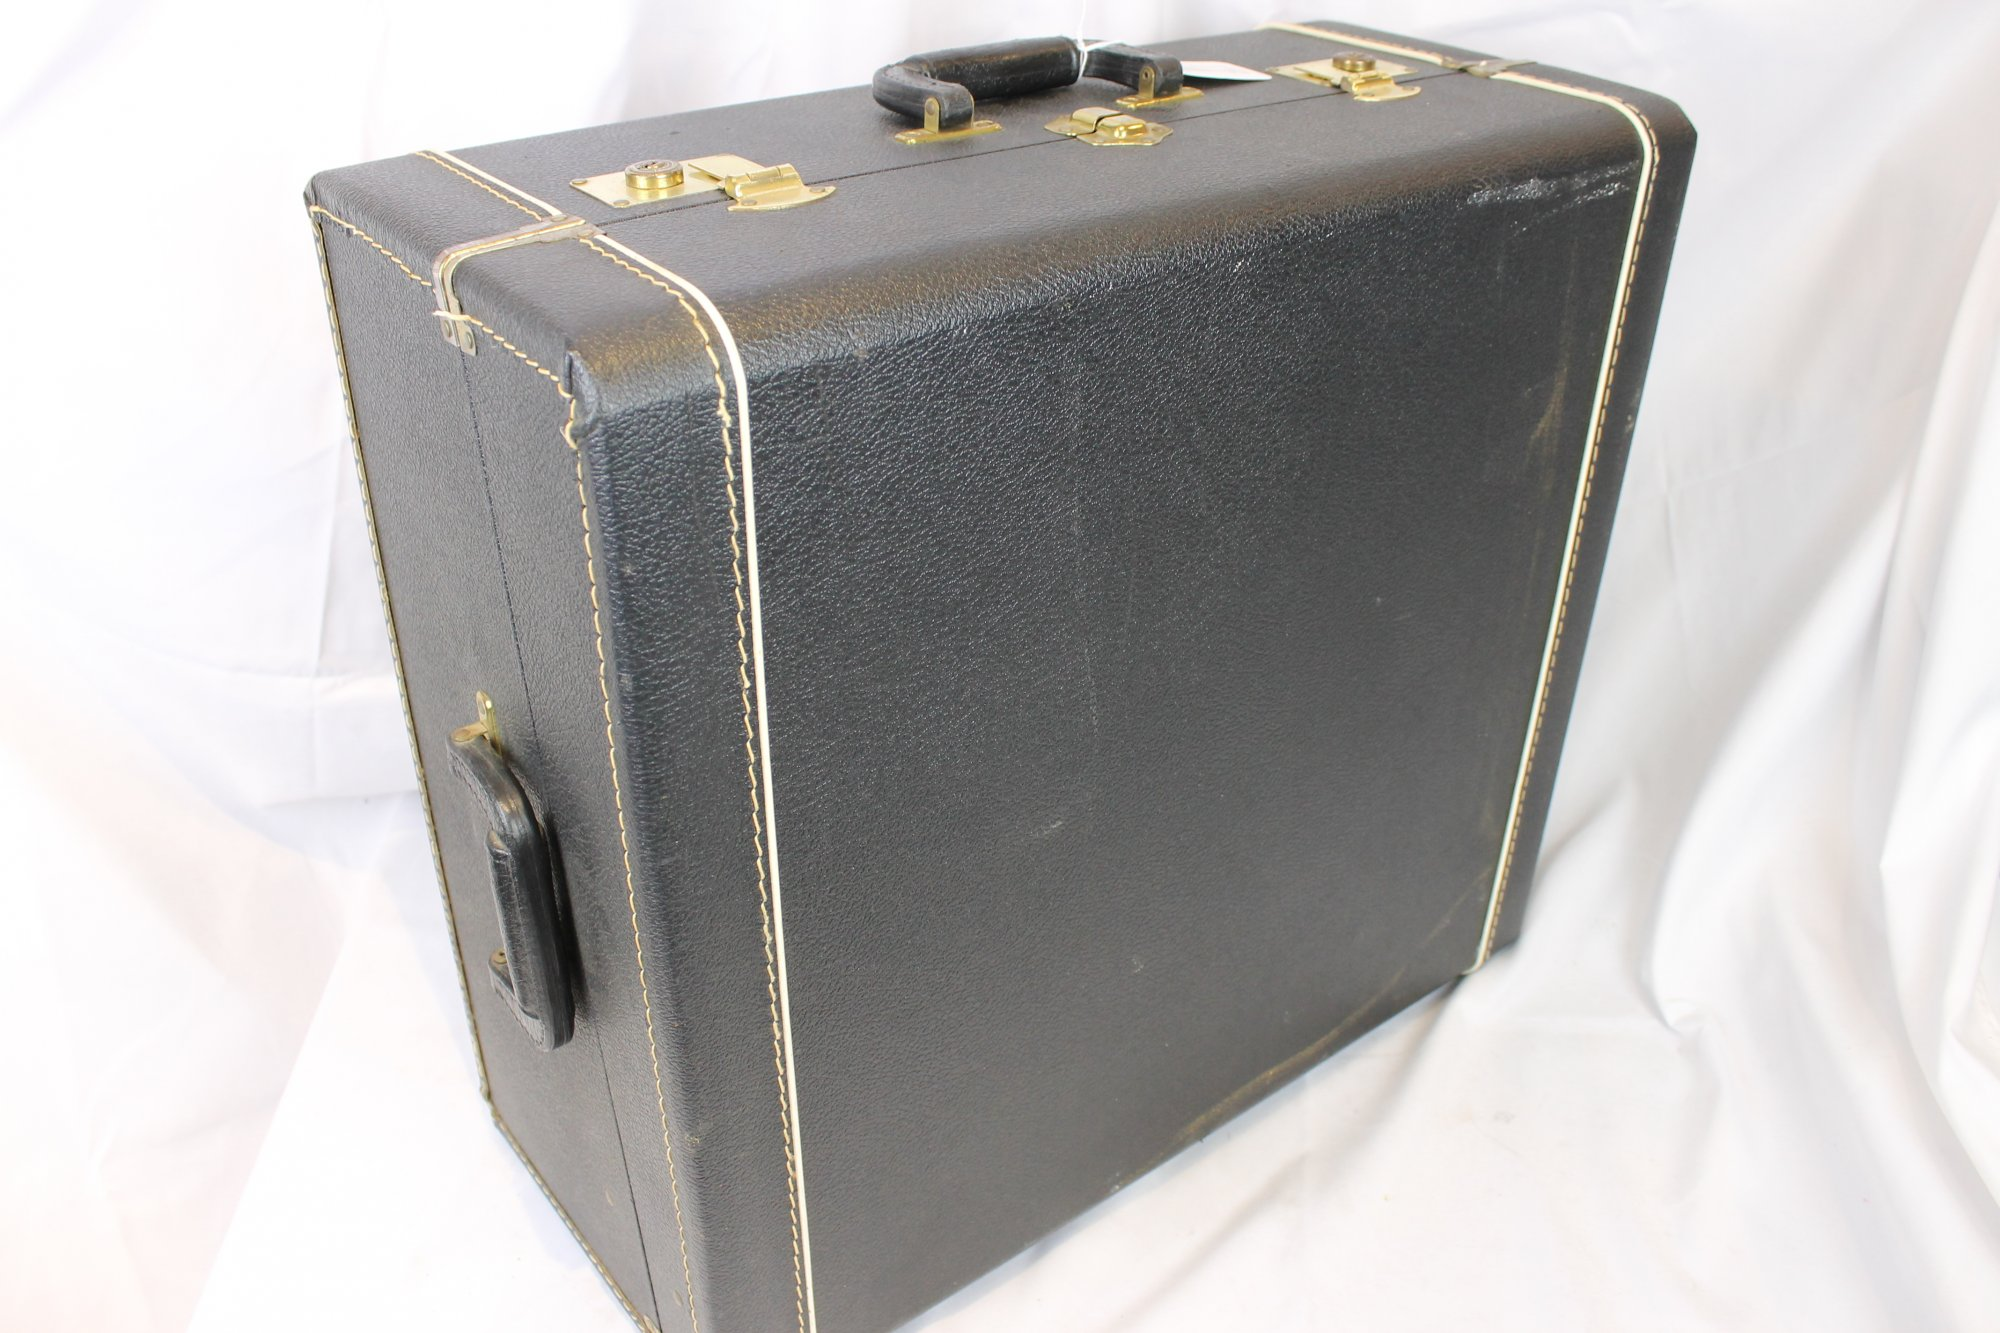 Black Giulietti Accordion Hard Case 20 x 18.5 x 9 (51cm x 47cm x 23cm)